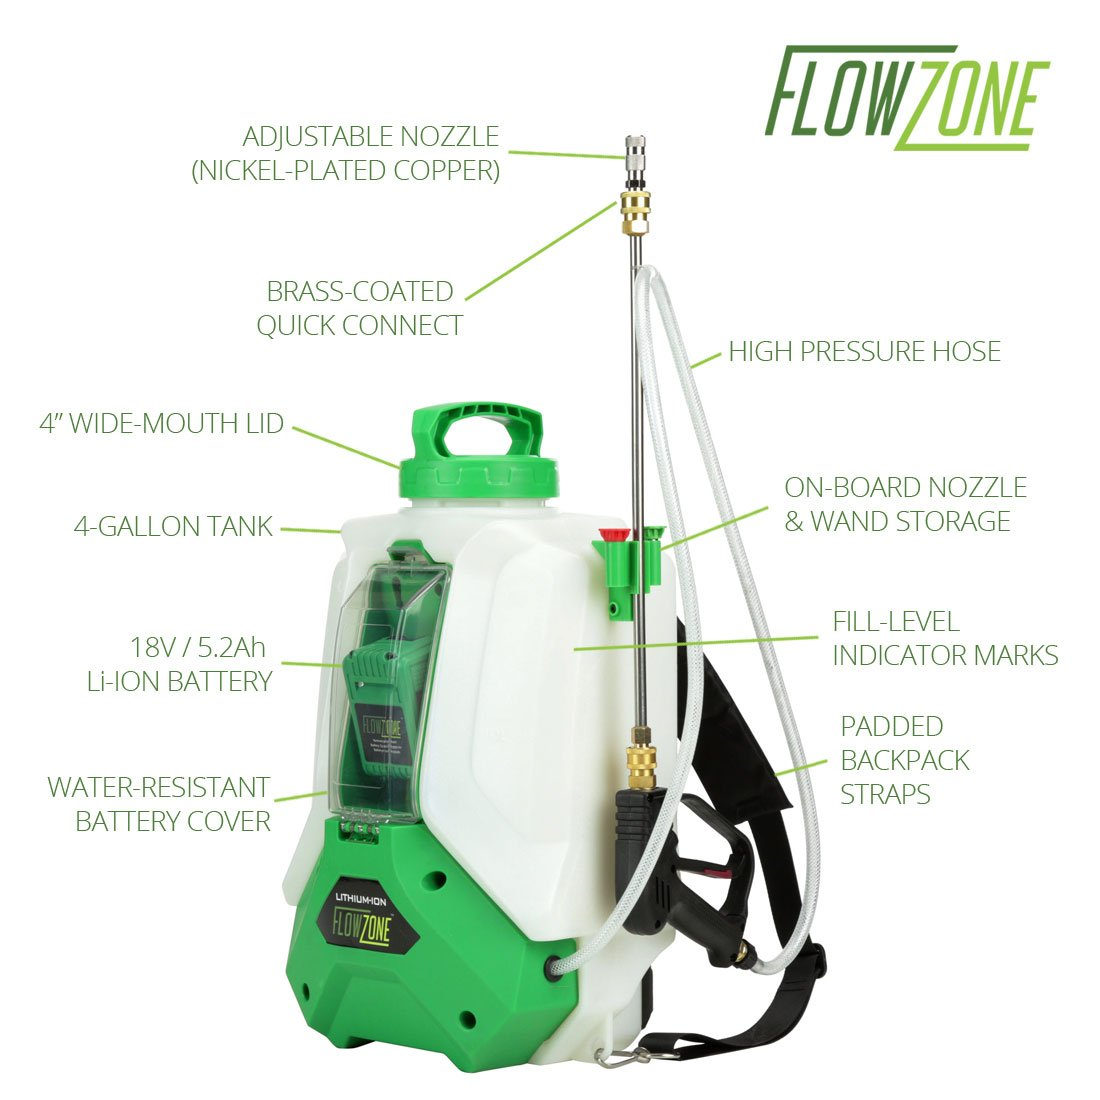 Typhoon 4-Gallon Multi-Use Continuous-Pressure 18V/5.2Ah Lithium-Ion Backpack Sprayer by FlowZone (Image #3)